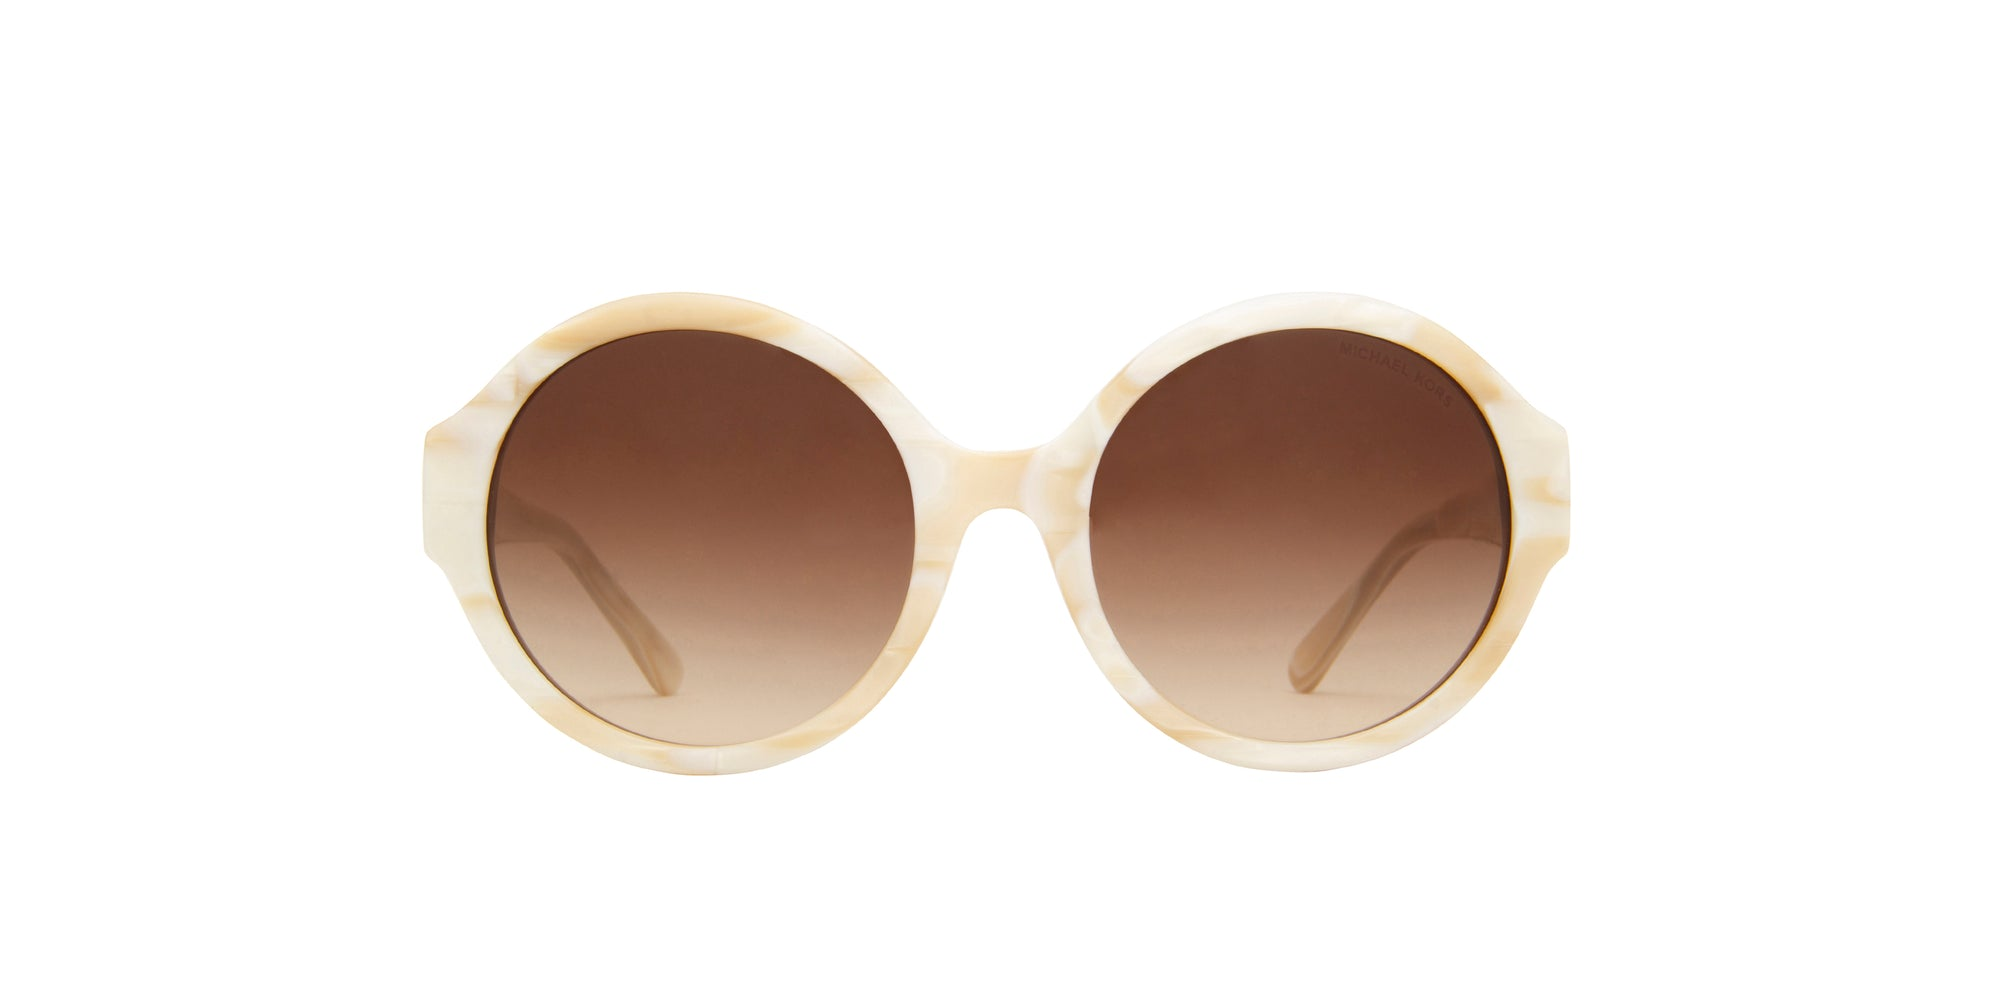 Michael Kors - MK2035 Beige Oval Women Sunglasses - 55mm